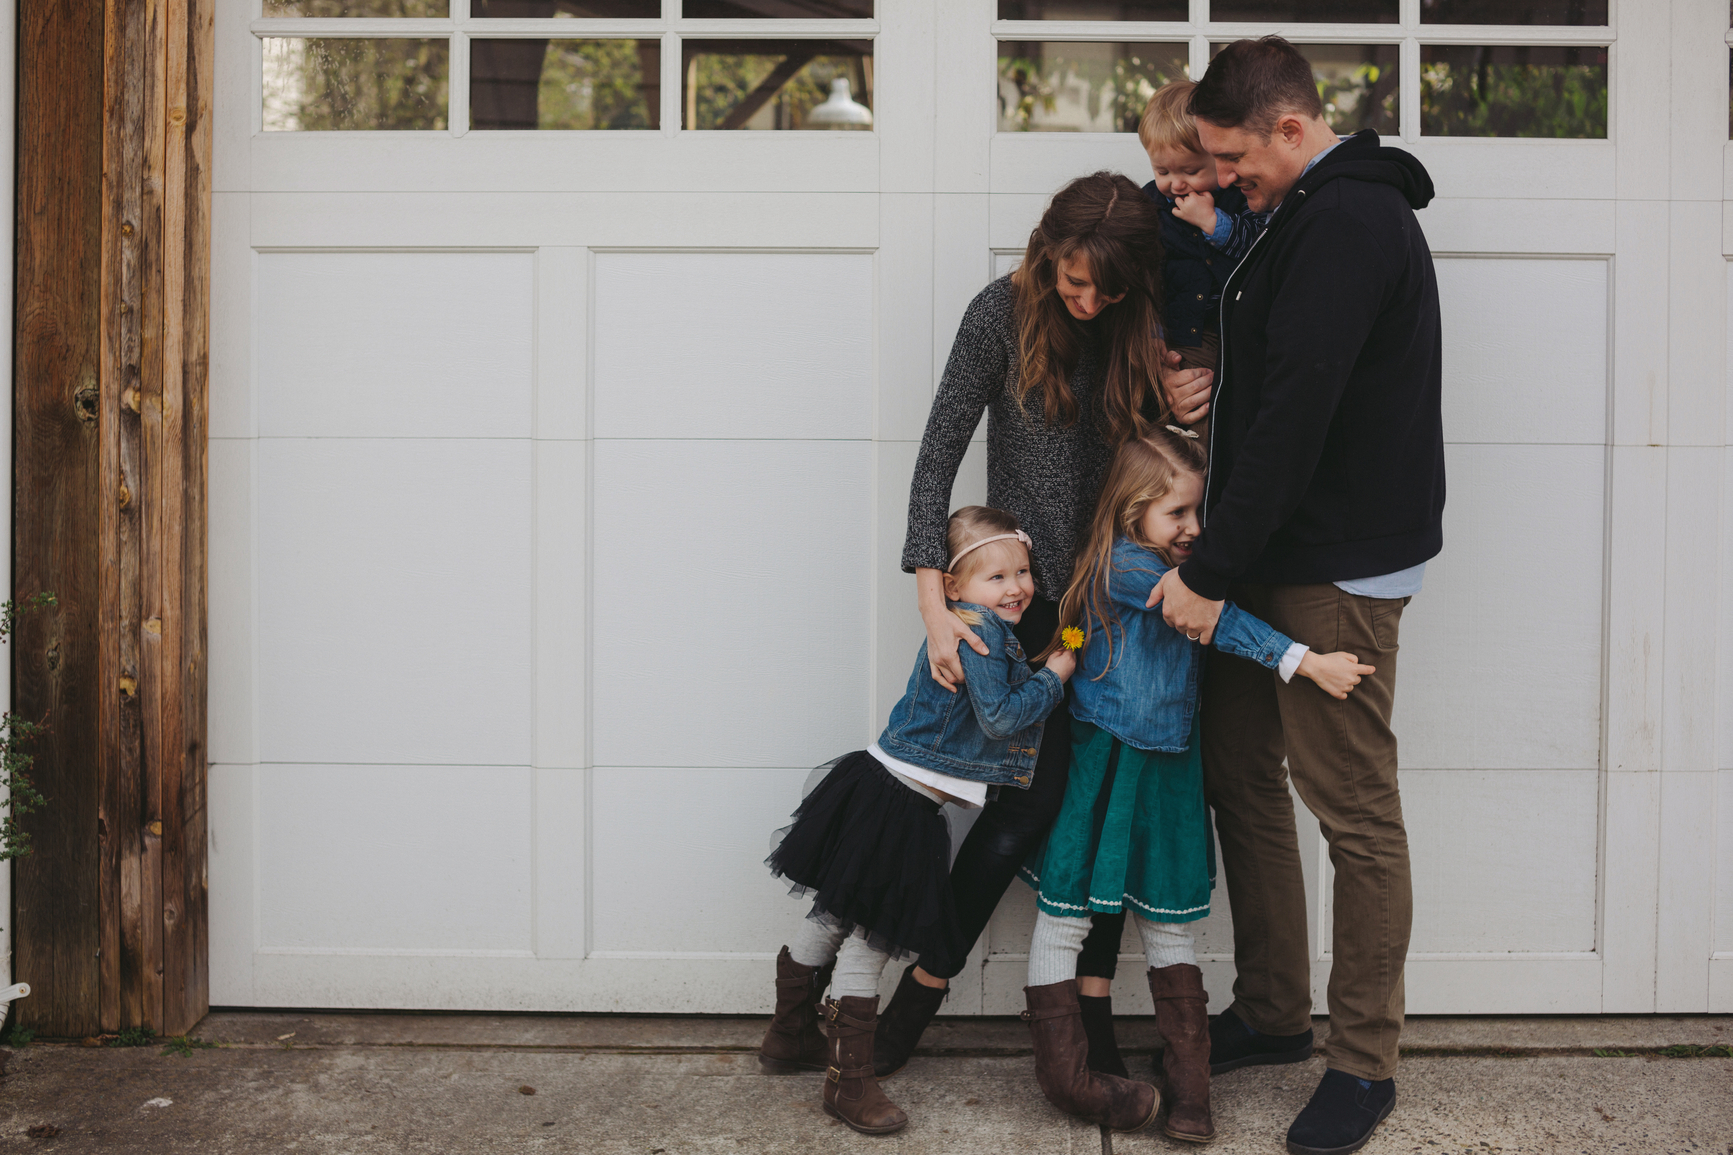 Young family of five enjoying time -hugging together outside nea